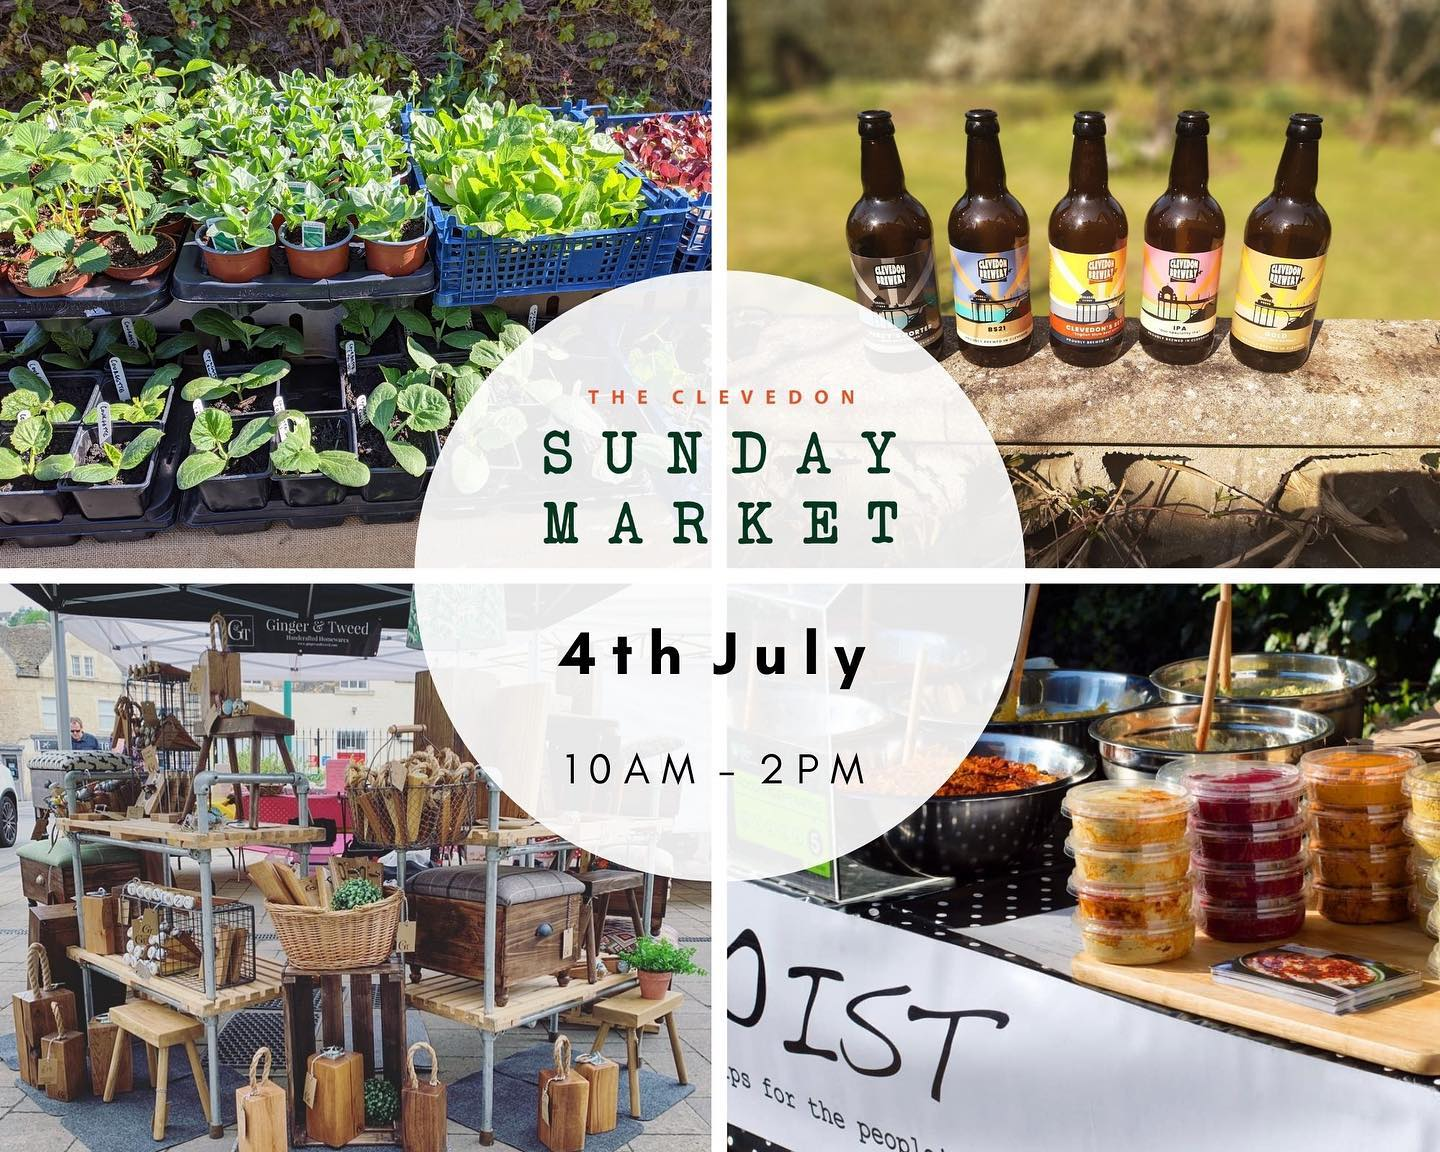 We always love our trips to Clevedon and especially on market day!Join us on July the 4th for the @clevedonsundaymarket it's going to be even bigger and we can't wait! ..#handmade #local #shop #supportlocal #shopsmall #artisan #maker #creative #marketday #bristol #clevedon #community #lifestyle